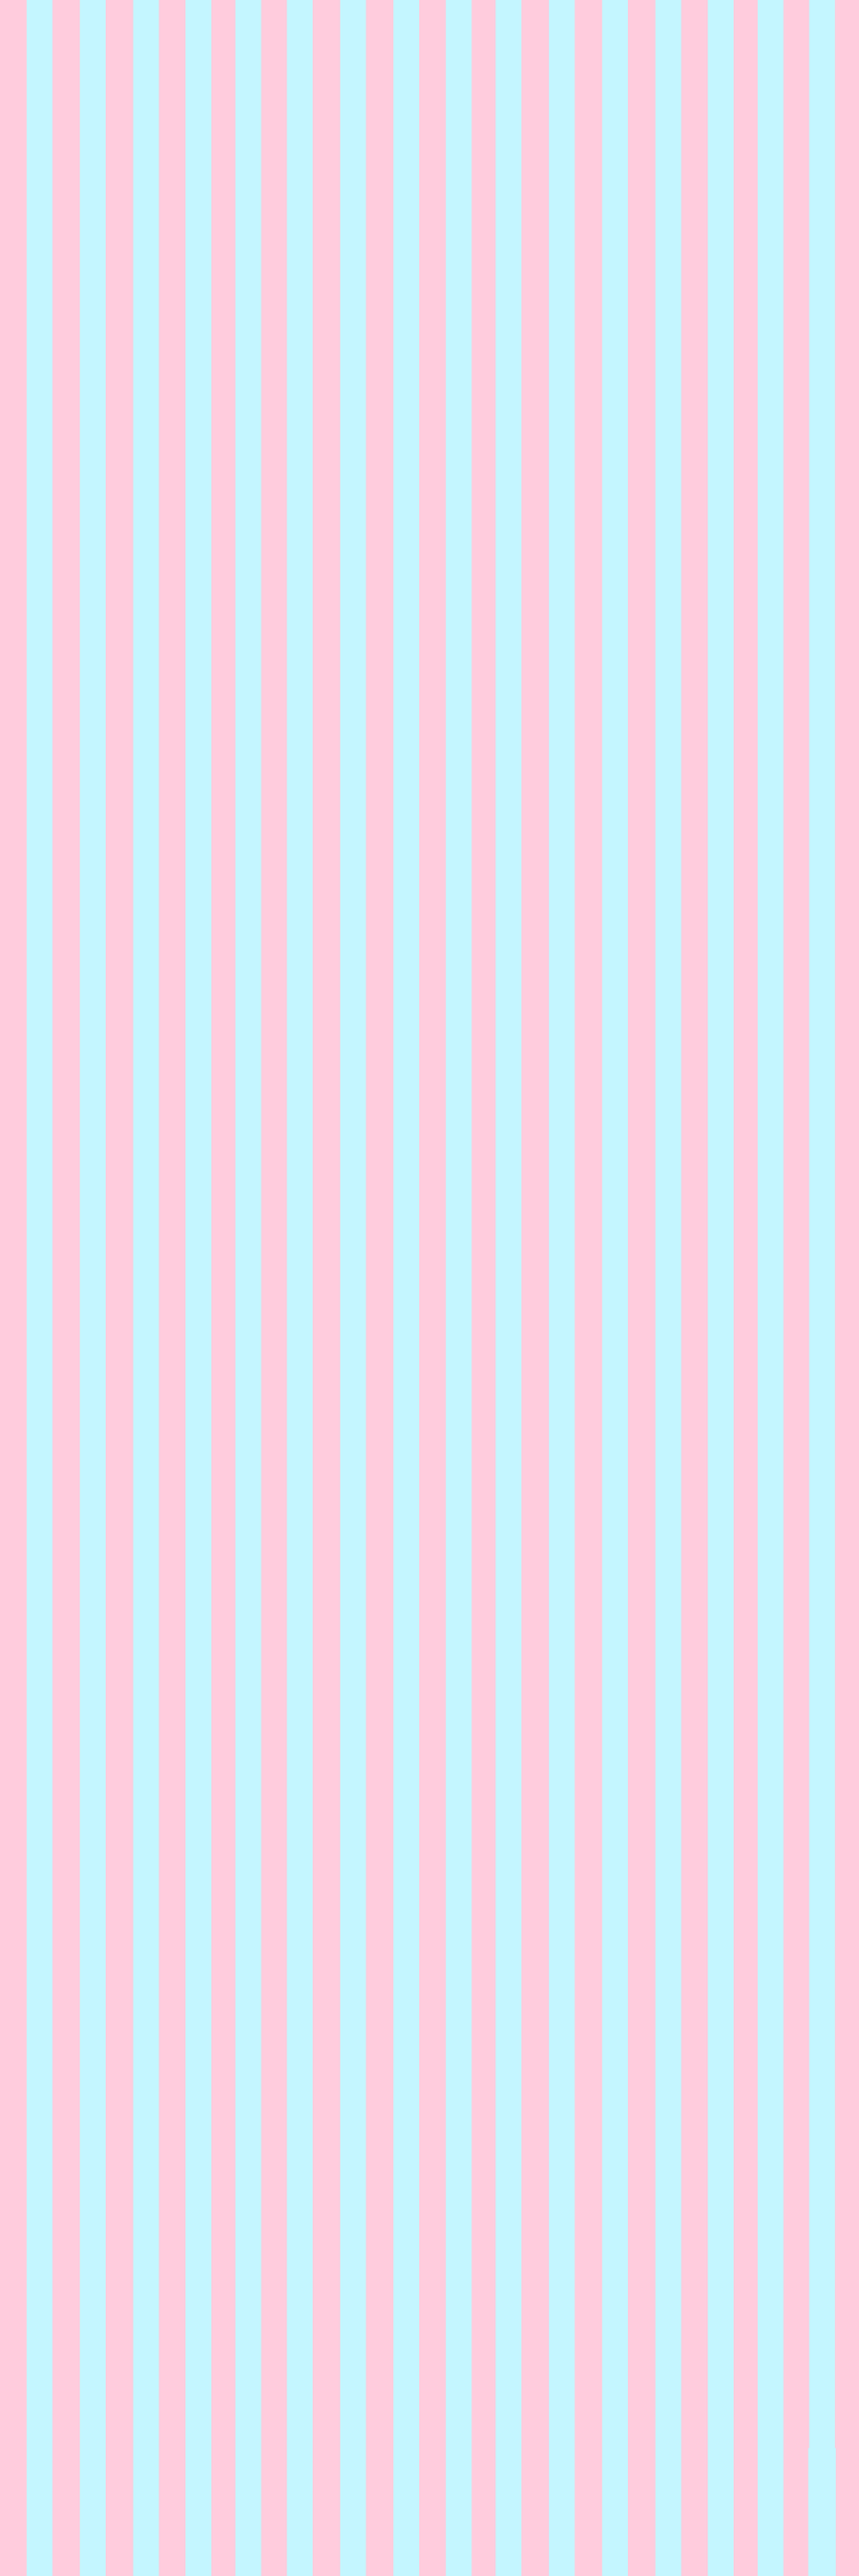 Pink striped wallpaper hd - Pink And Blue Striped Wallpaper By Lexicakes On Deviantart